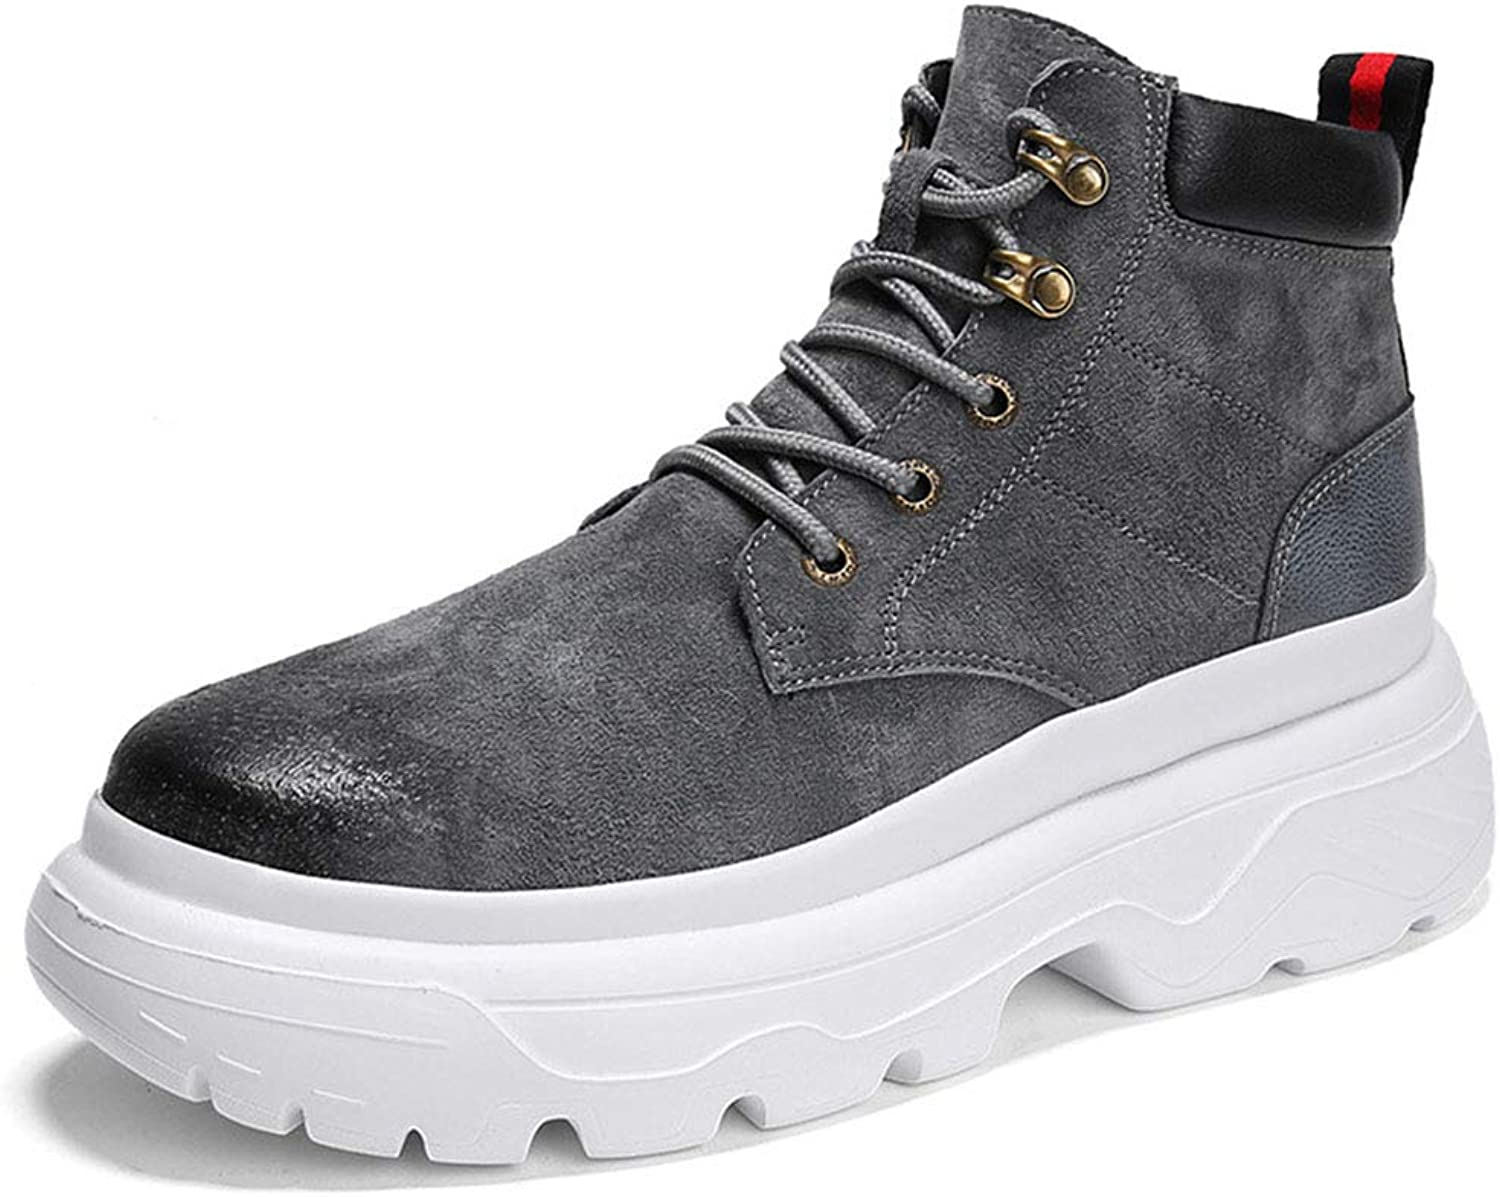 Men's Boots, Leather Fall Winter Fashion Korean Casual Hair Stylist Tide shoes High Help Martin Boots Comfortable Running Boot Walking Boot Hiking Boot High-Top Boot XUE (color   A, Size   42)